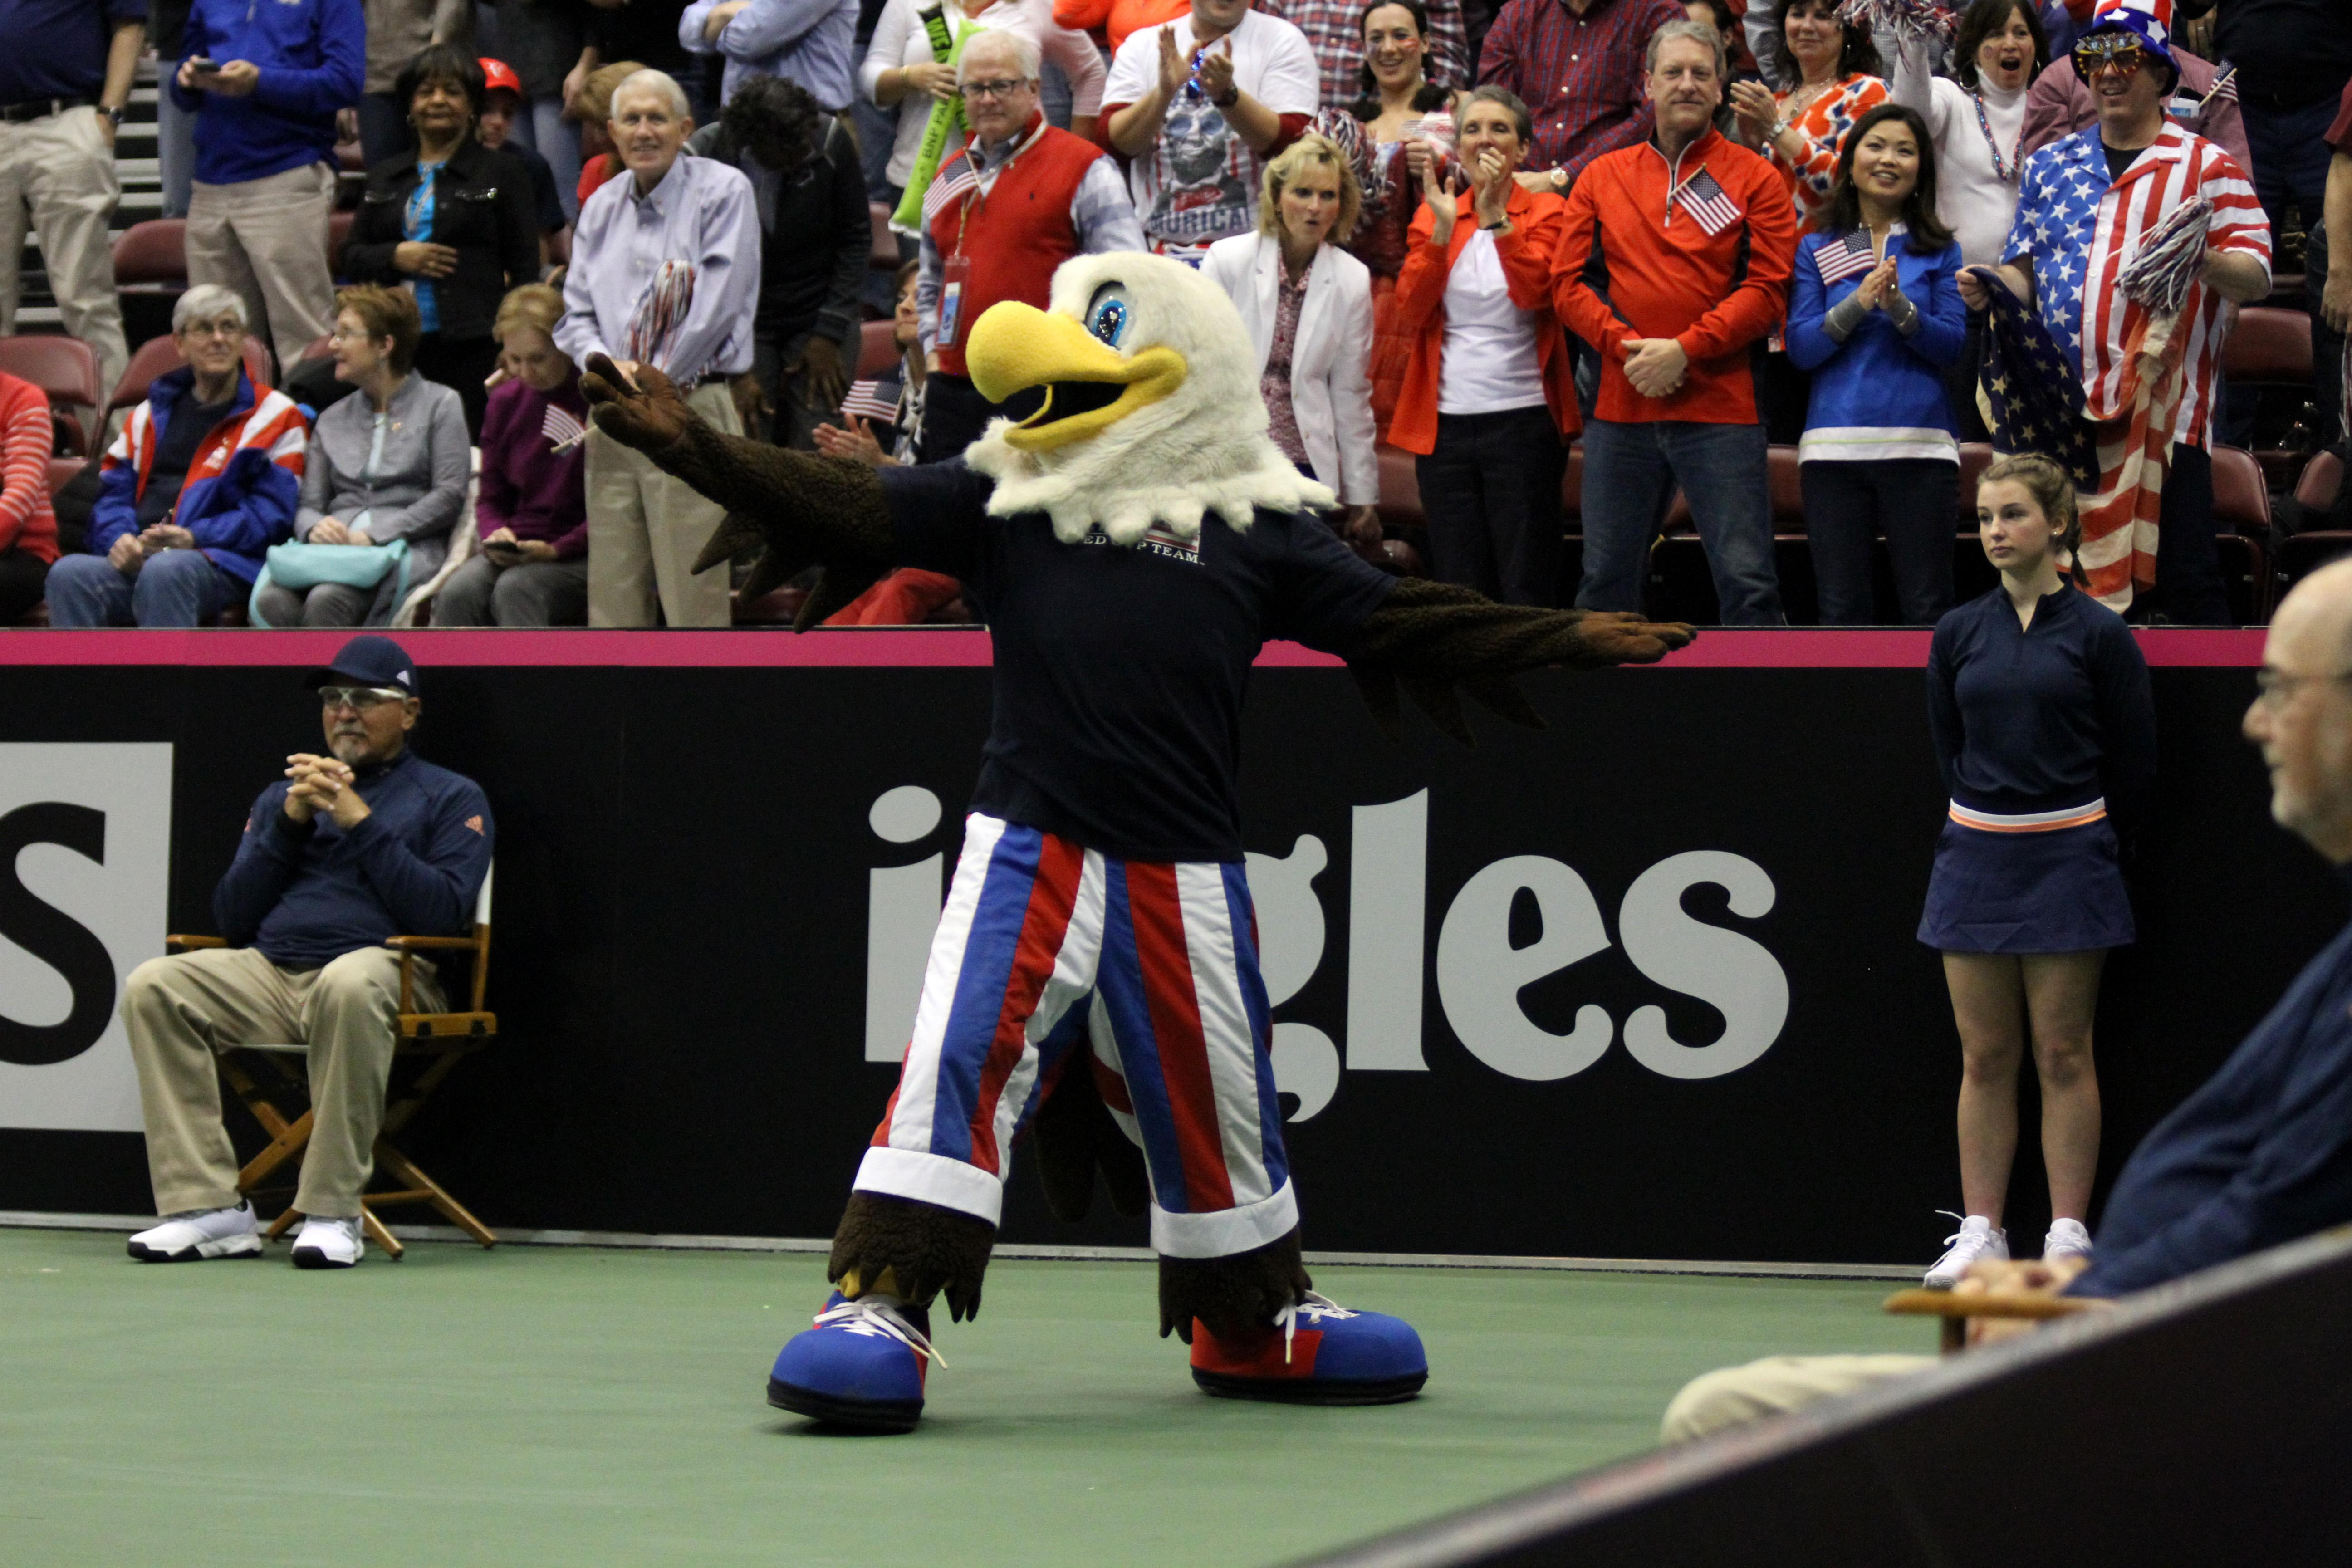 The scene at the Fed Cup on Saturday, Feb. 10, 2018. Venus Williams played Netherlands' Arantxa Rus and CoCo Vandeweghe played Netherlands' Richel Hogenkamp. Team USA won both matches. (Photo credit: Kelly Doty)